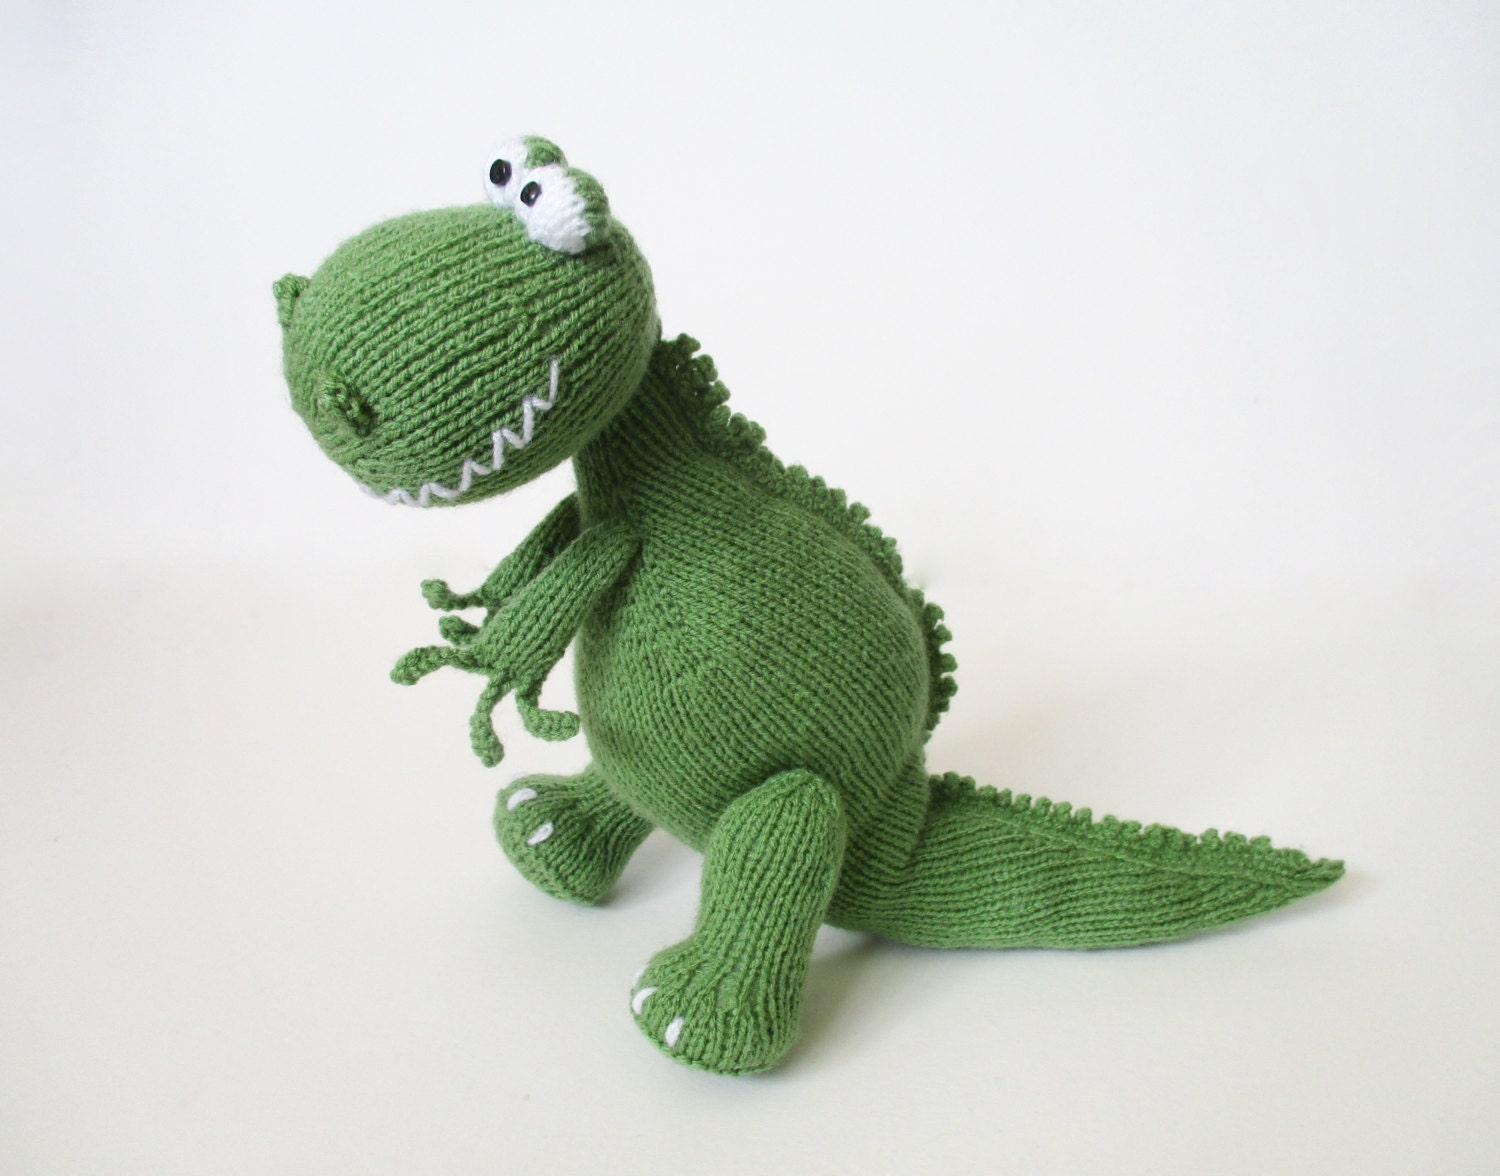 Trex and Bronty Dinosaurs toy knitting patterns